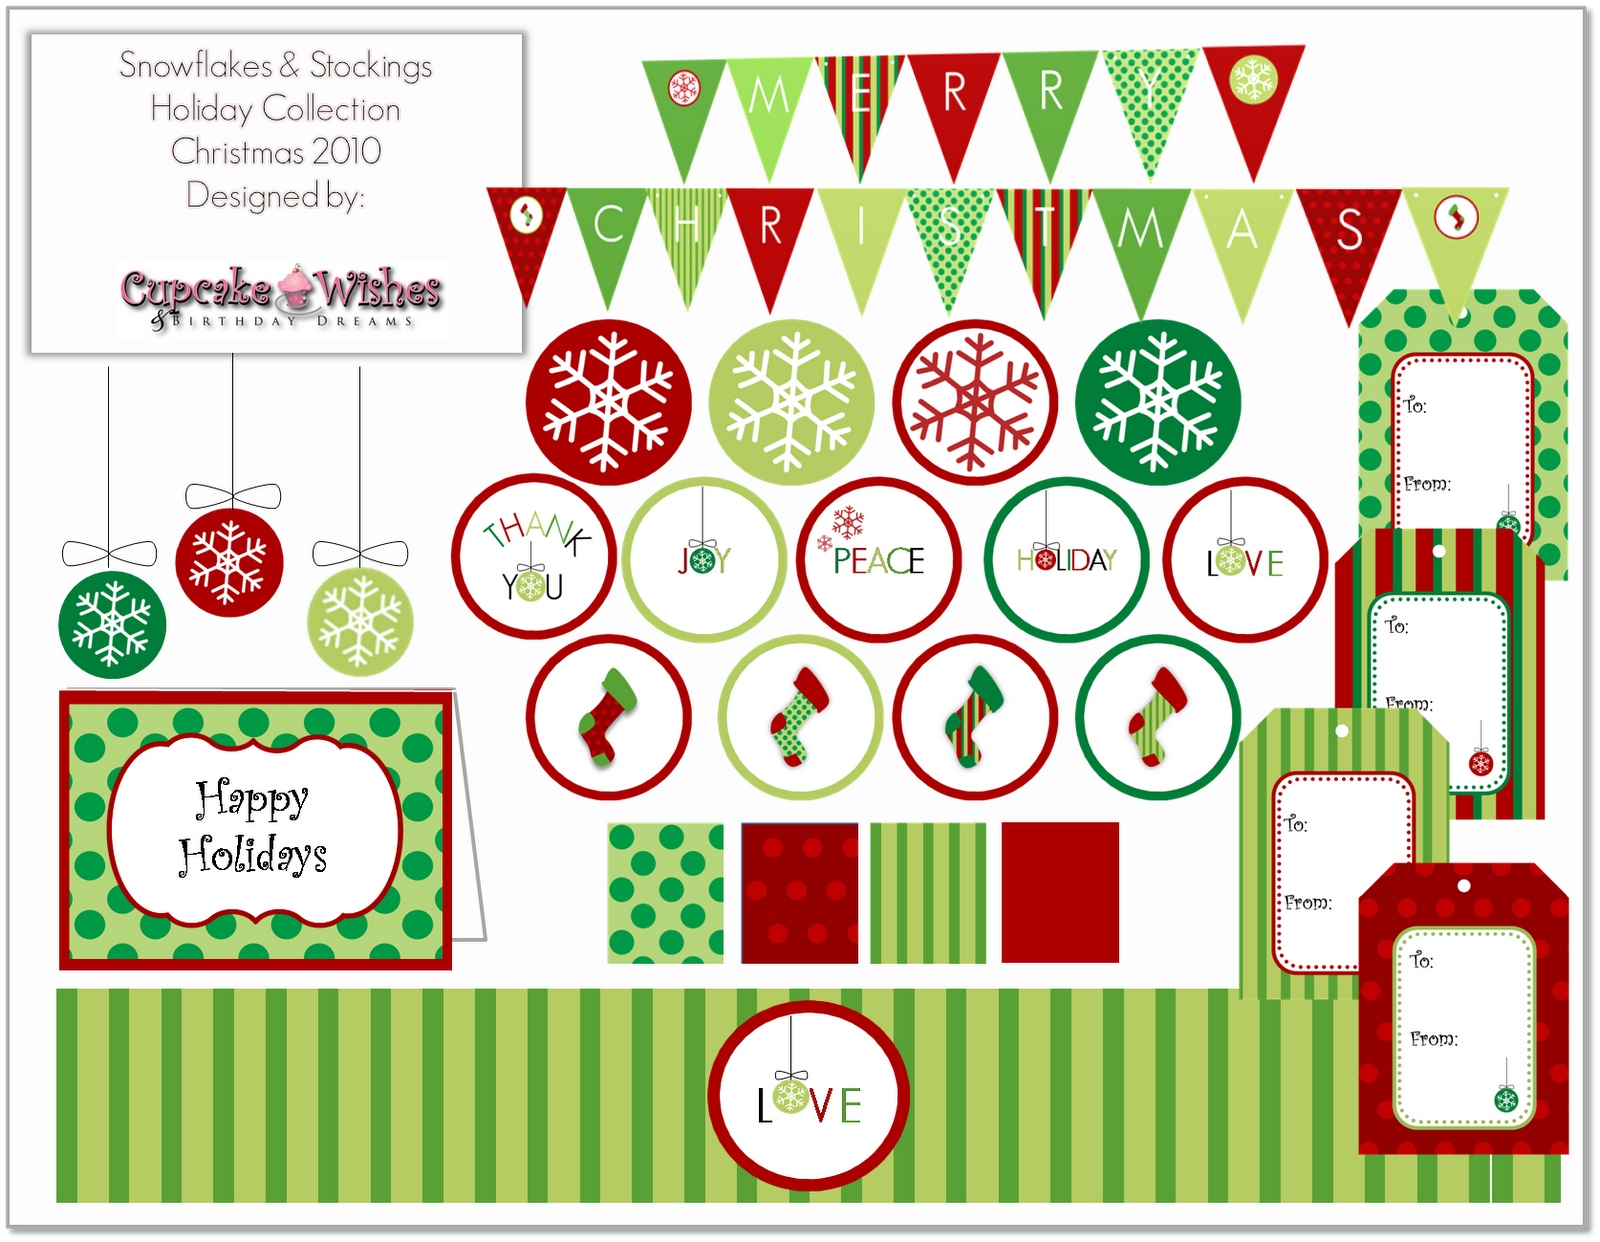 Cupcake Wishes & Birthday Dreams FREE PRINTABLE Snowflakes & Stockings Christmas Colletion 2010